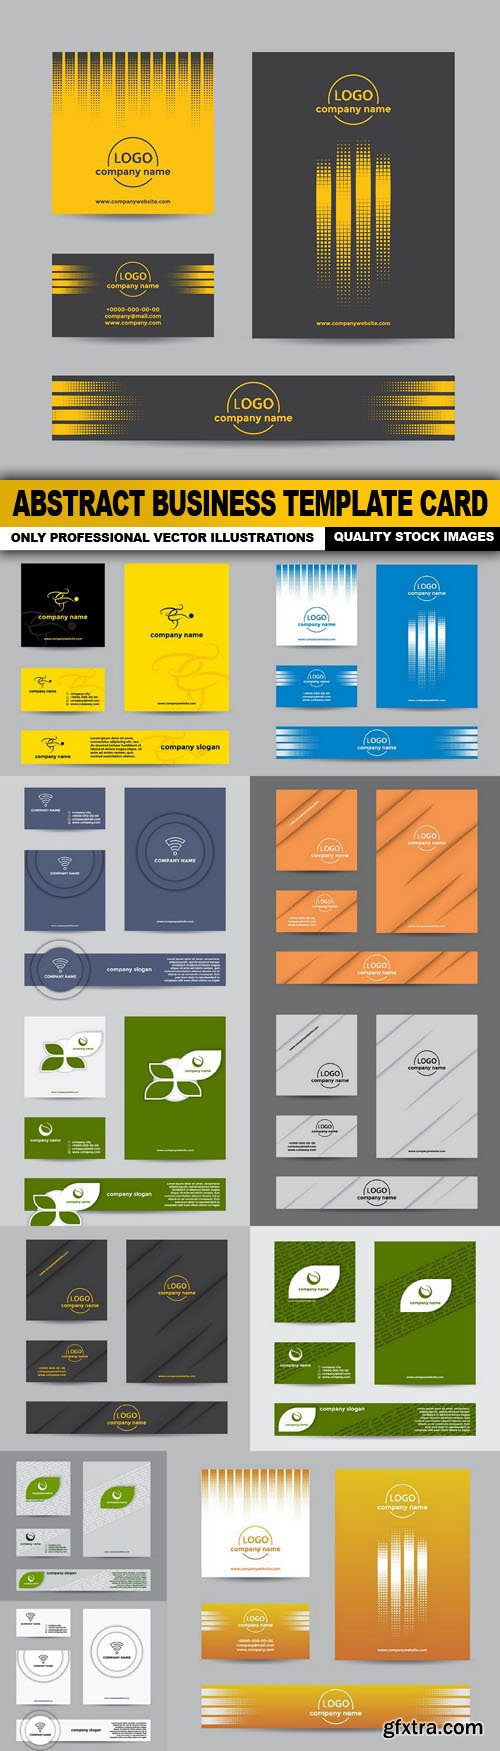 Abstract Business Template Card - 12 Vector